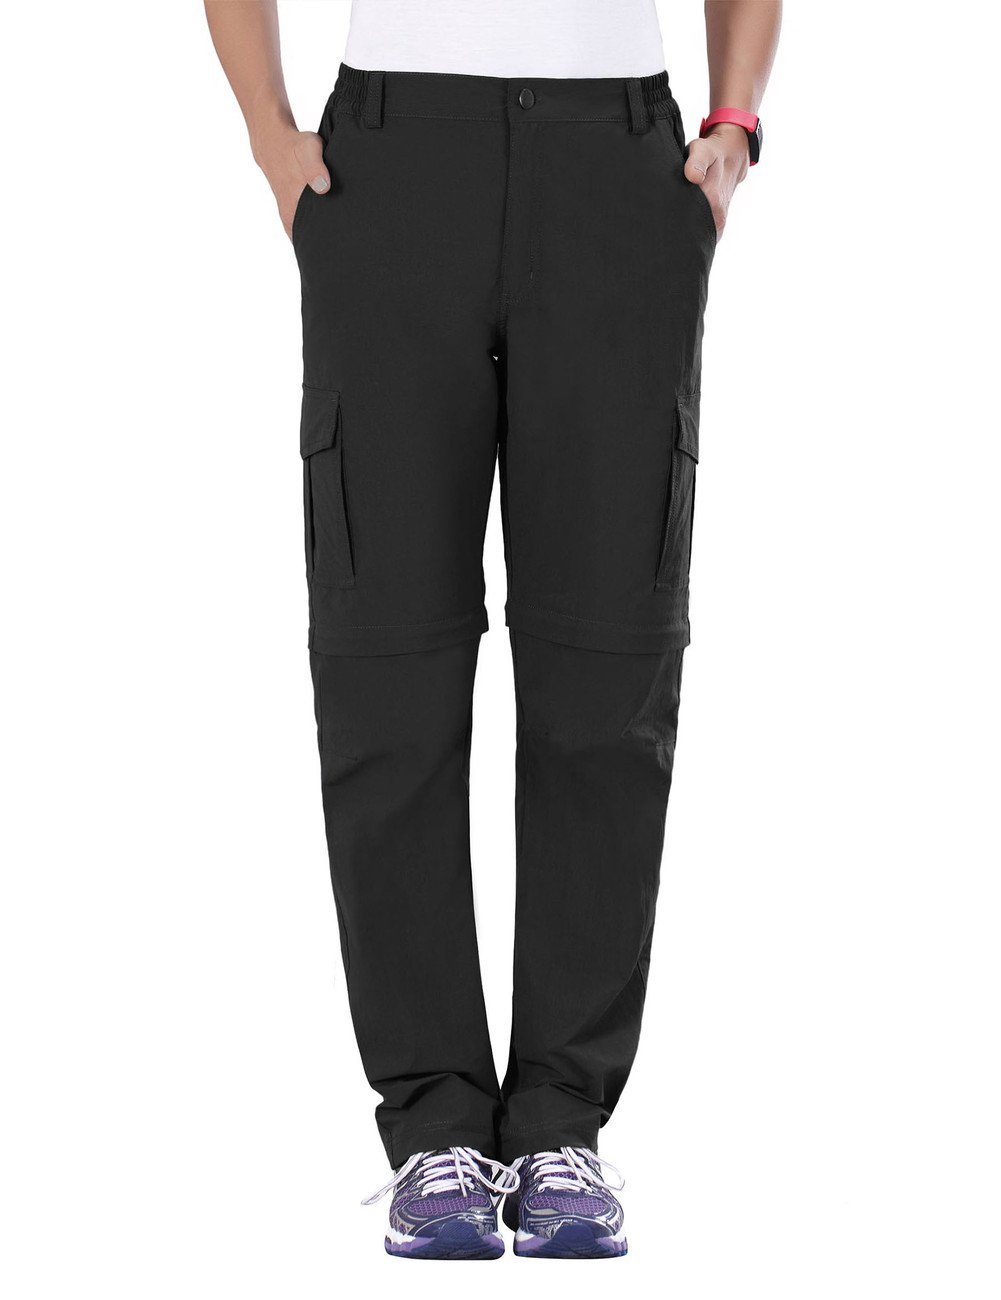 unitop Women's Quick Dry Convertible Climbing Pants Black L